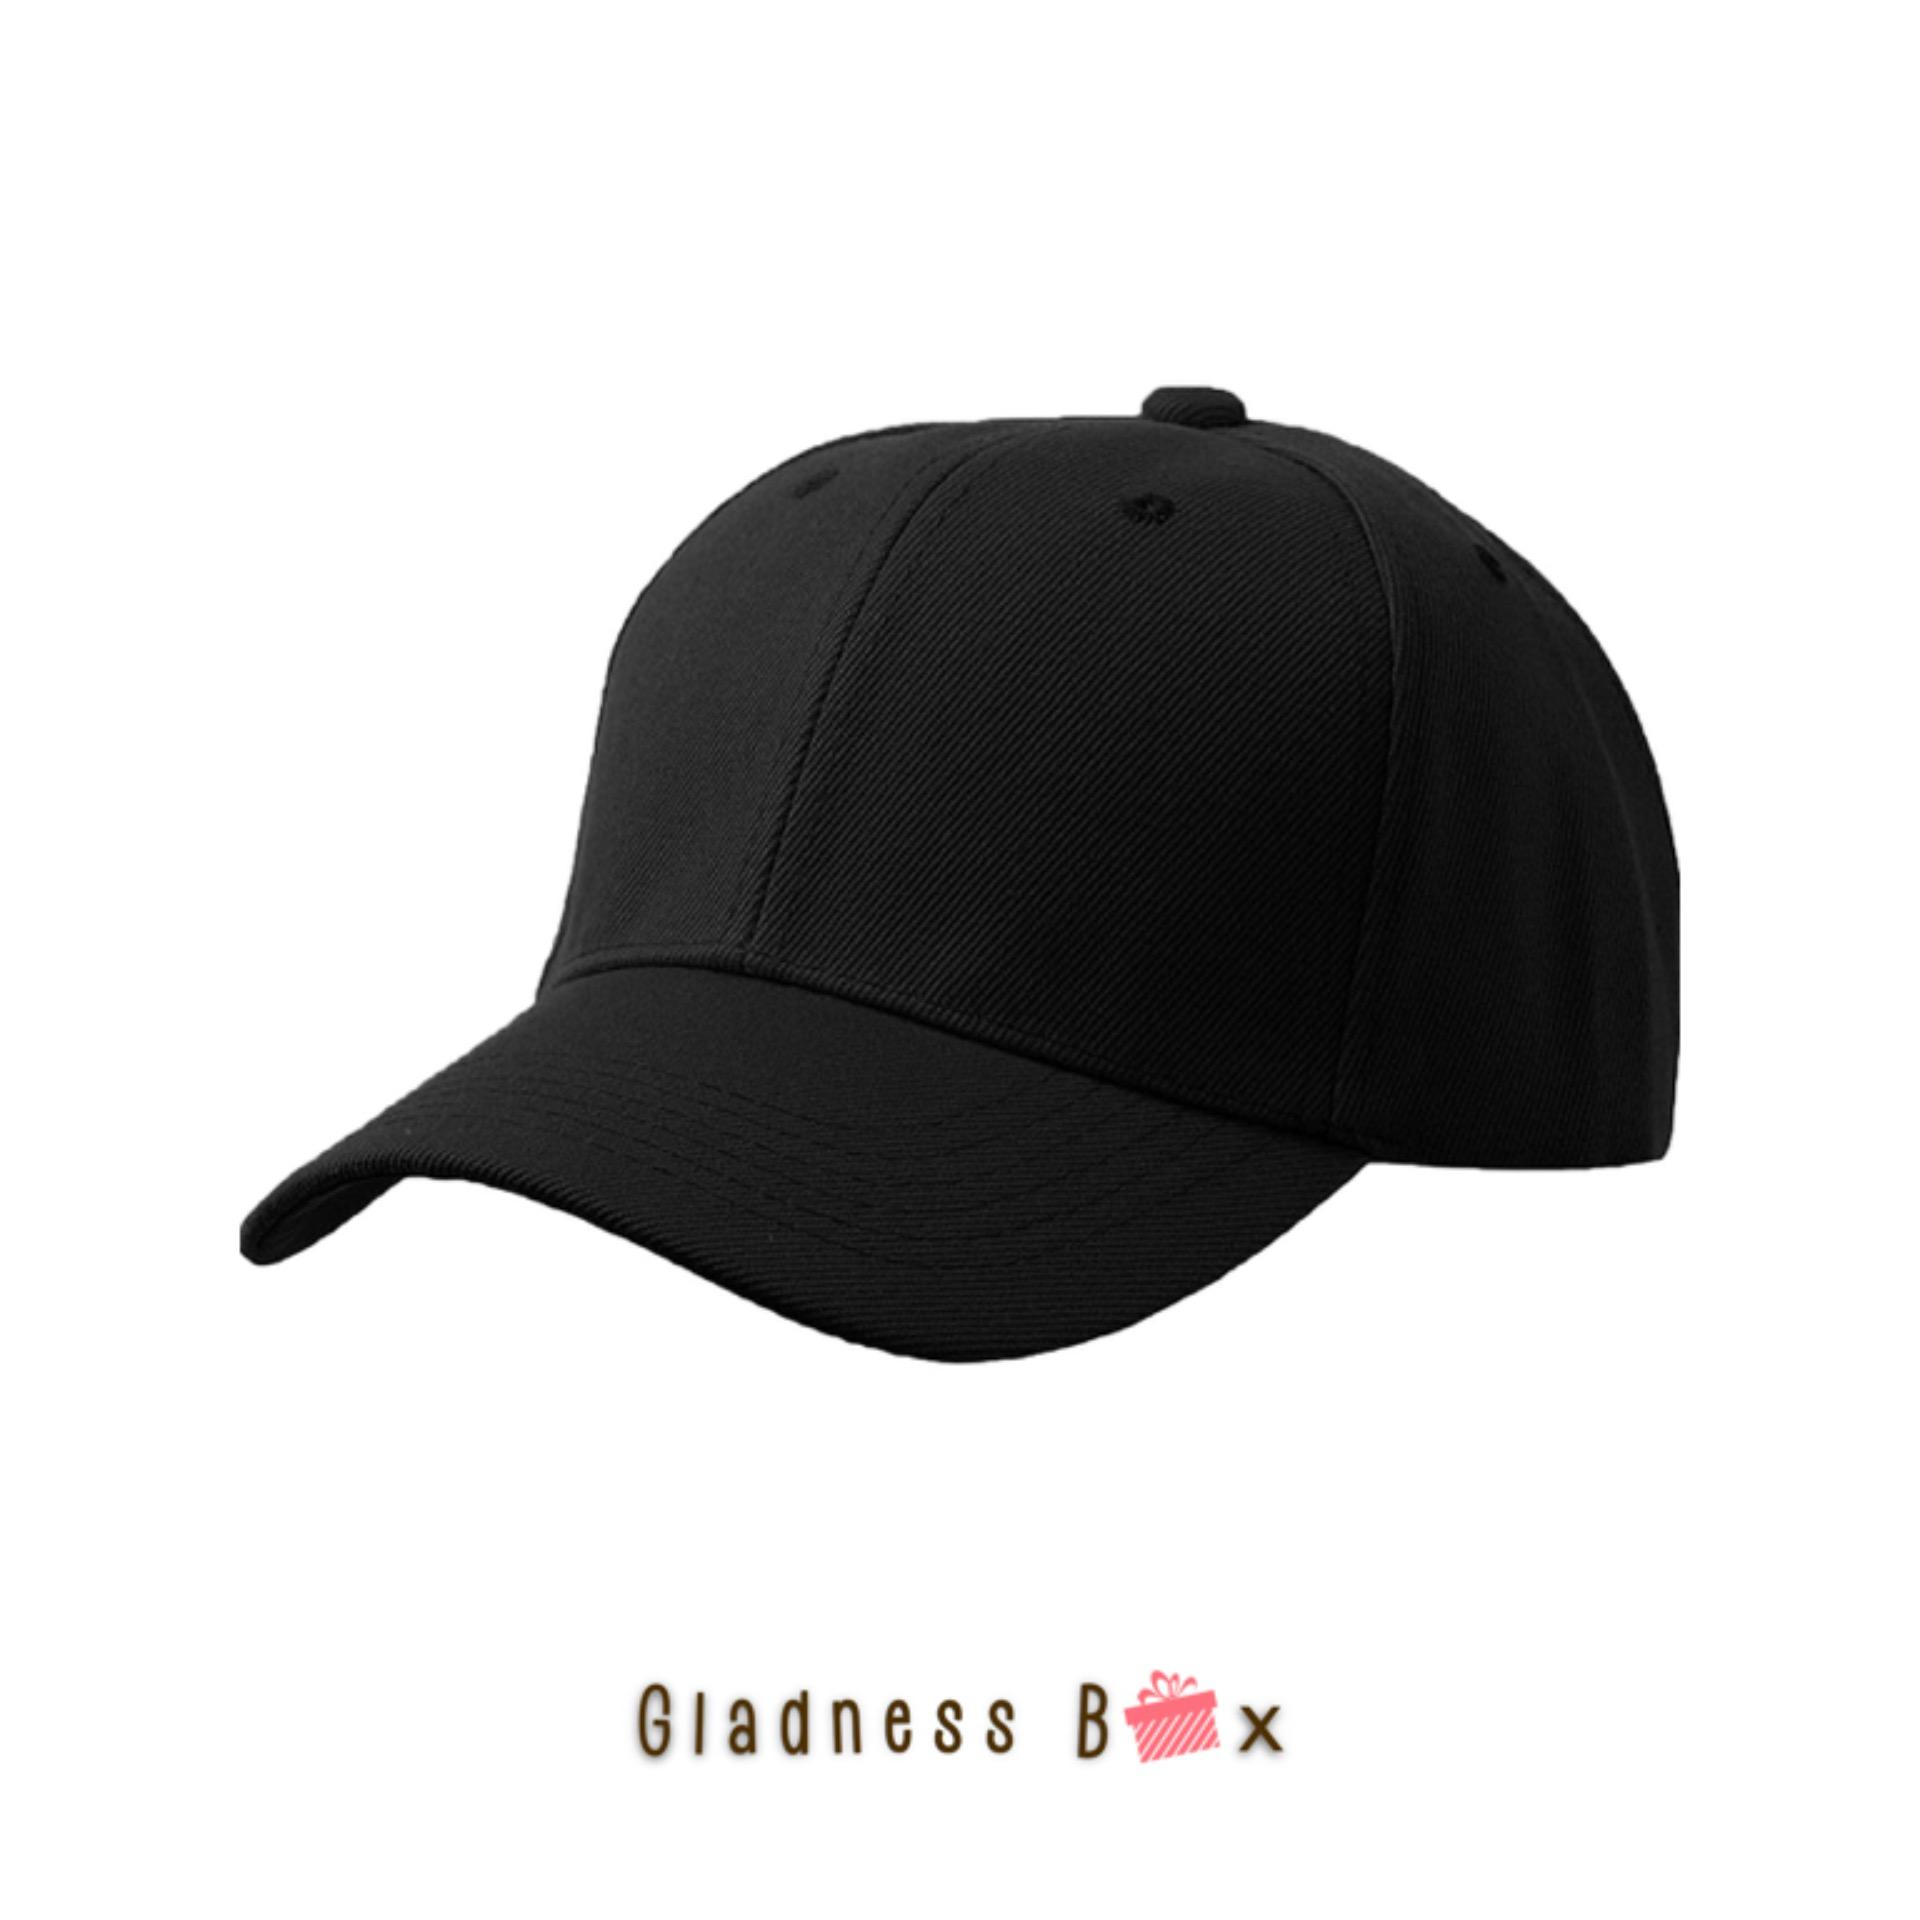 1667ed9524d Gladness Box High Quality Plain Baseball Cap for Men Women Unisex